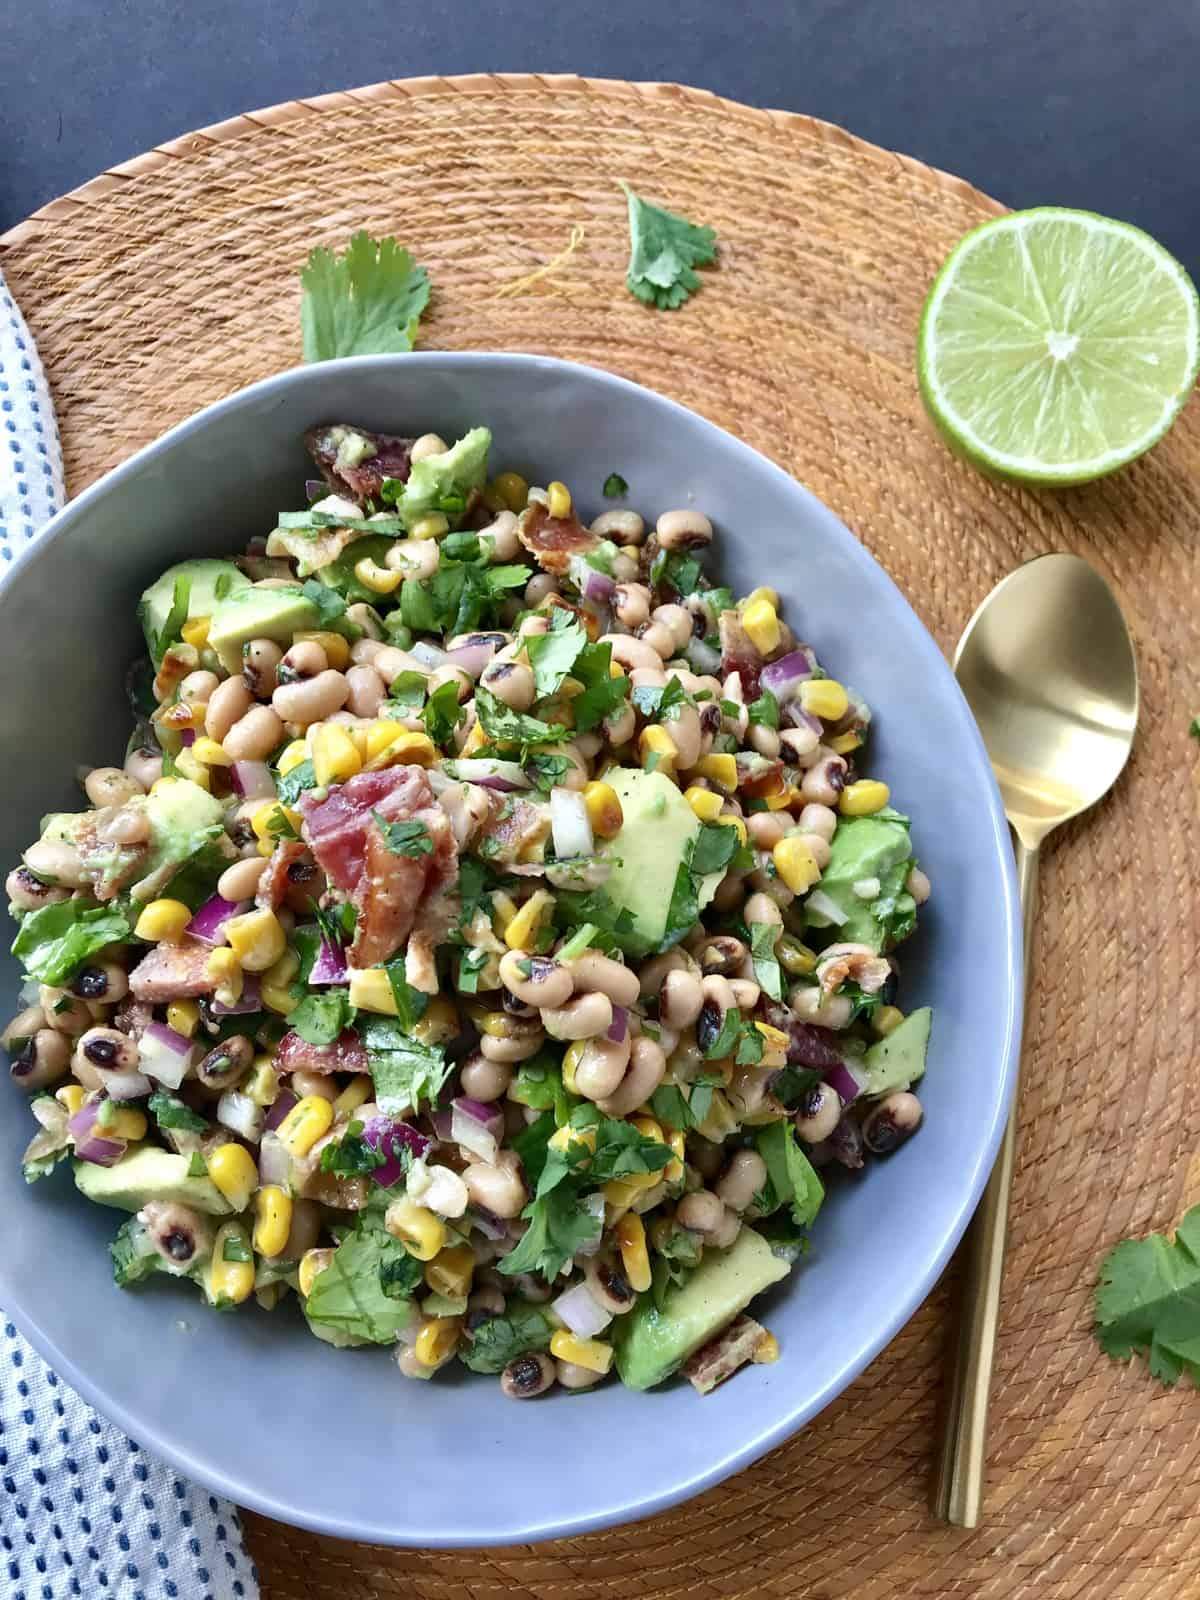 Black-Eyed Pea Salad with Corn and Avocado